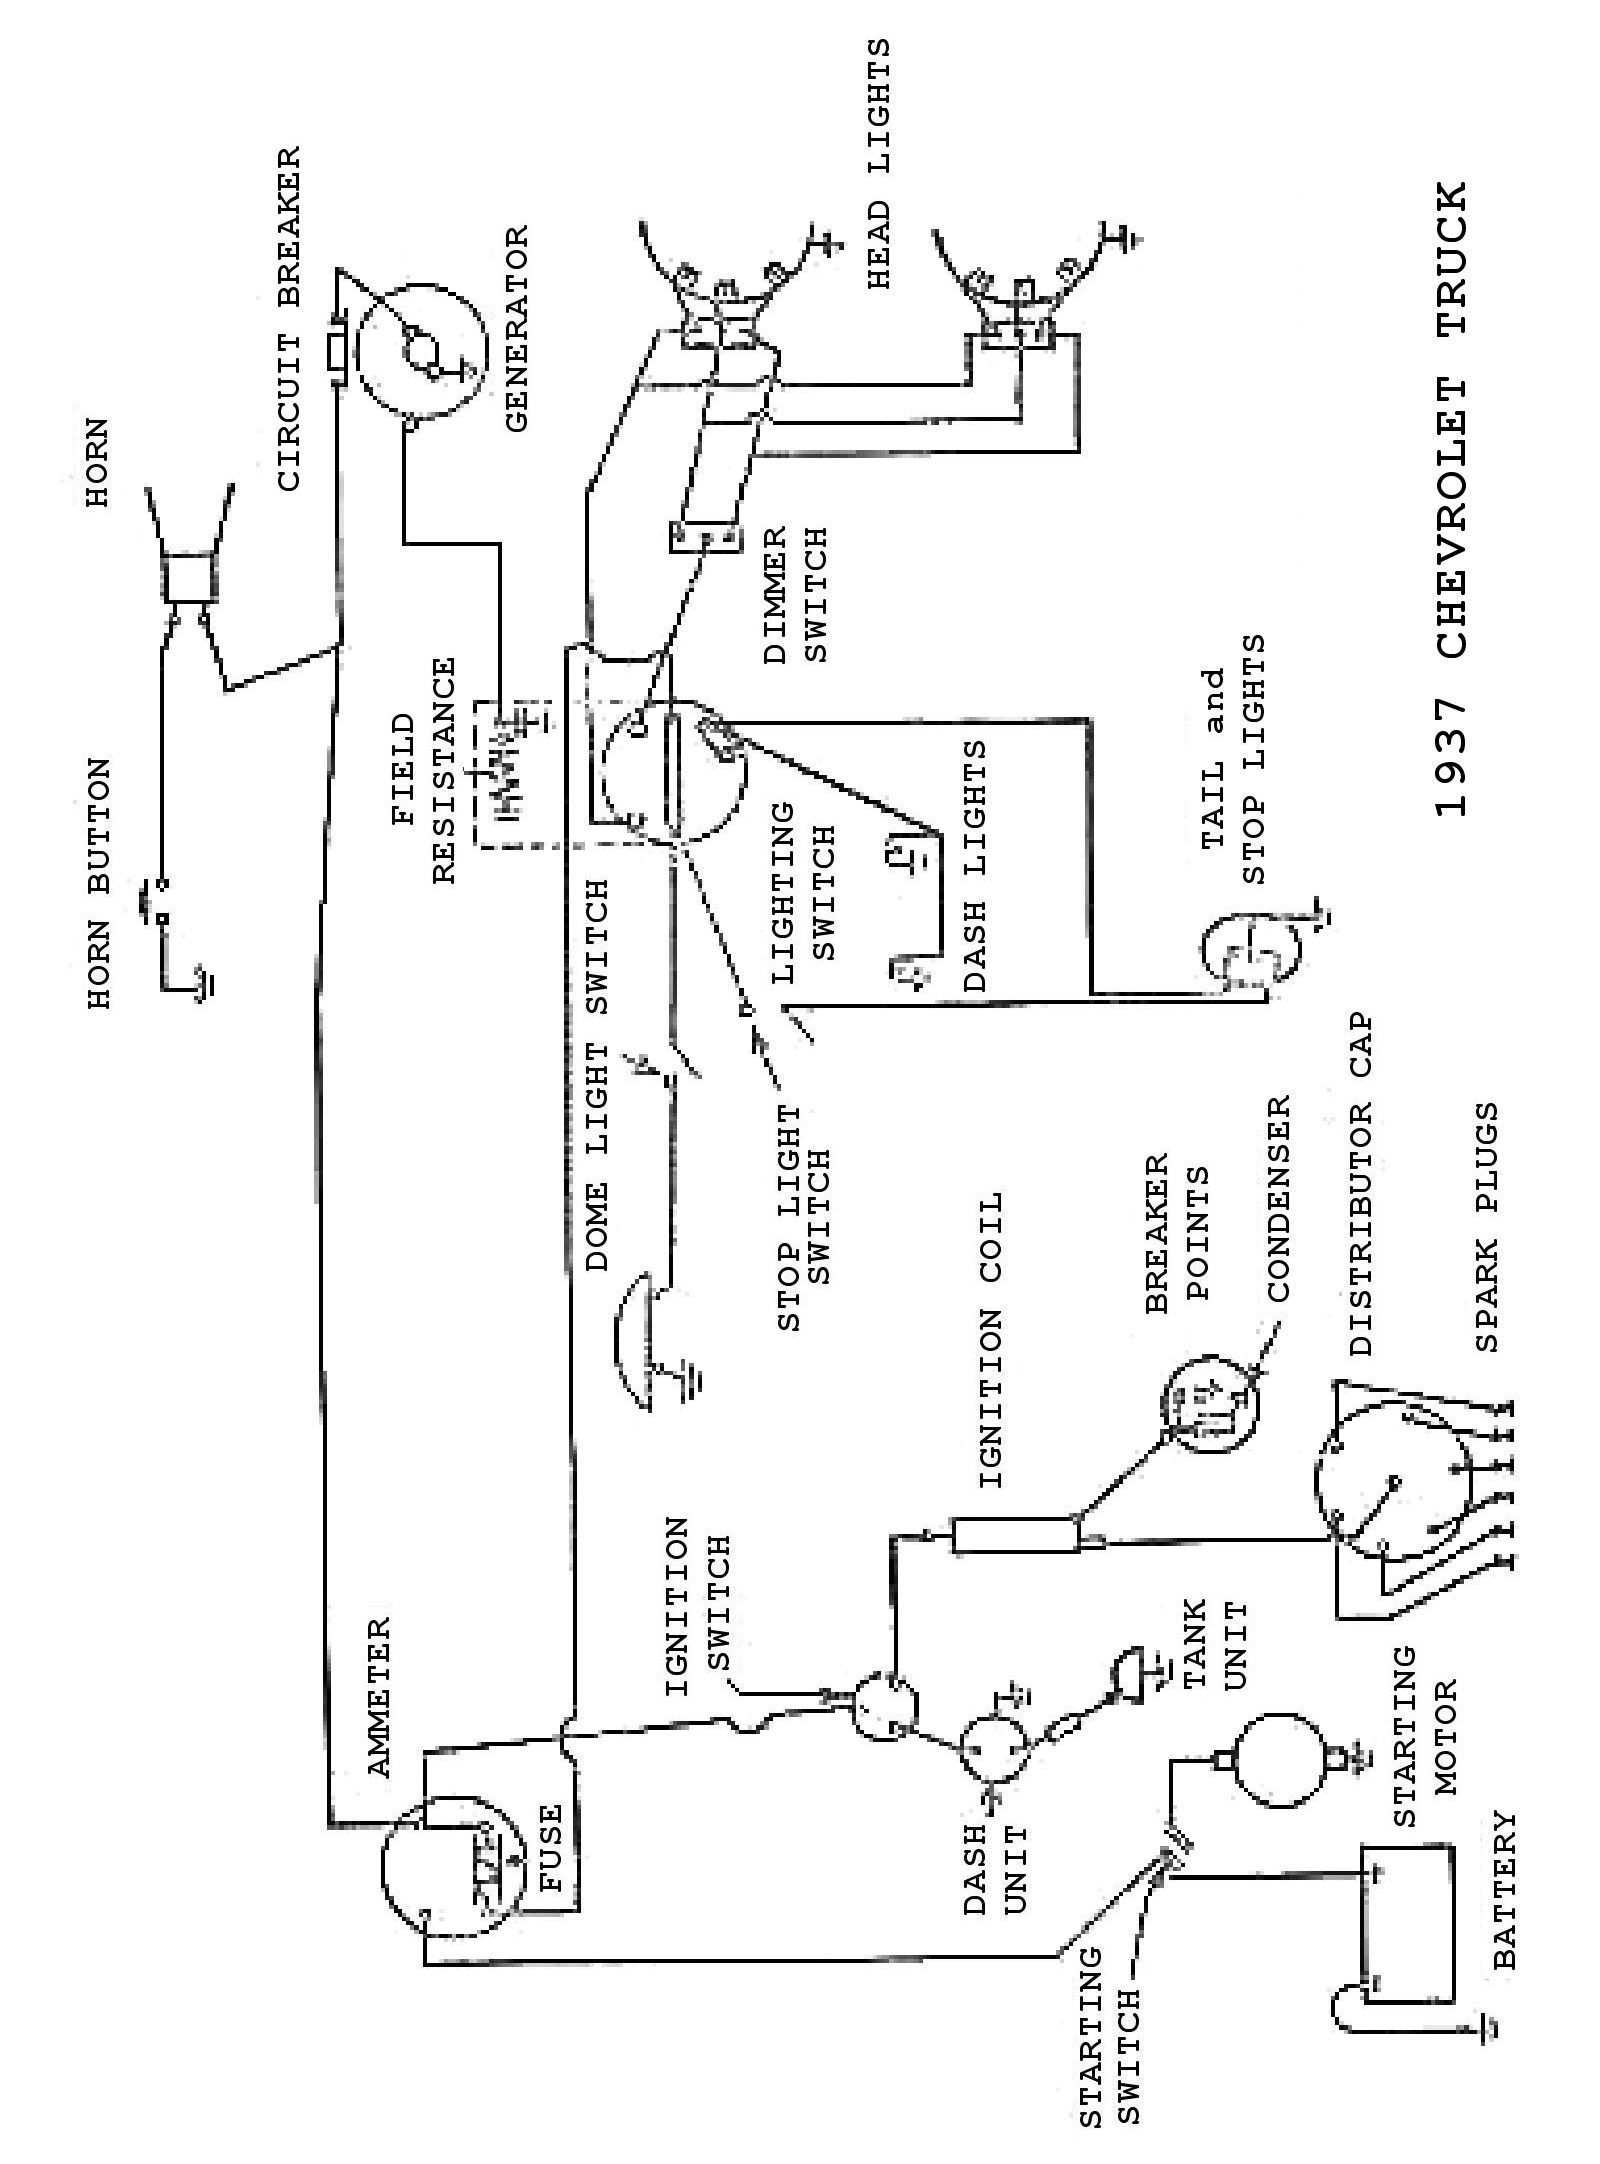 1998 chevy silverado brake light wiring diagram wiring diagrams of 1998 chevy silverado brake light wiring